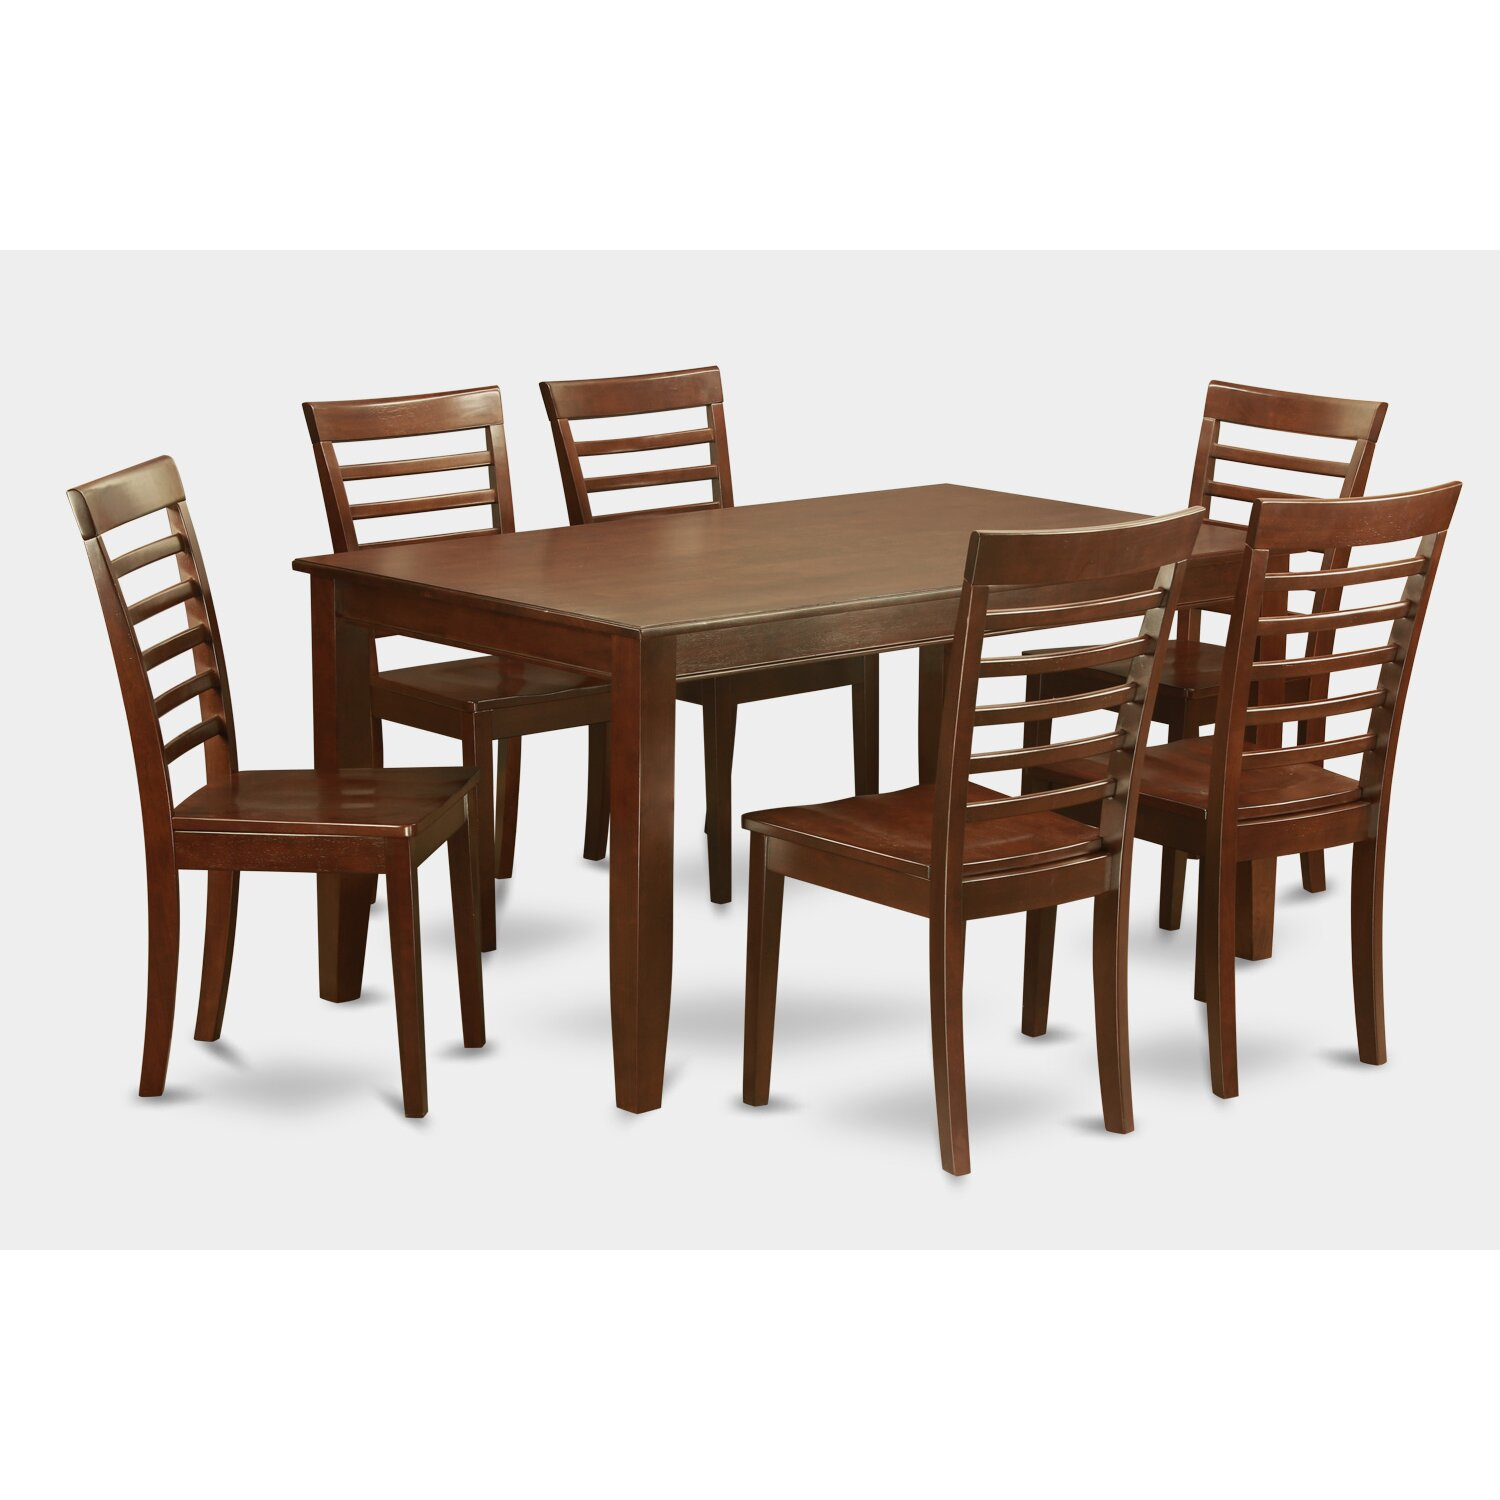 Wooden Importers 3 Piece Dining Set Reviews: Wooden Importers Dudley 7 Piece Dining Set & Reviews